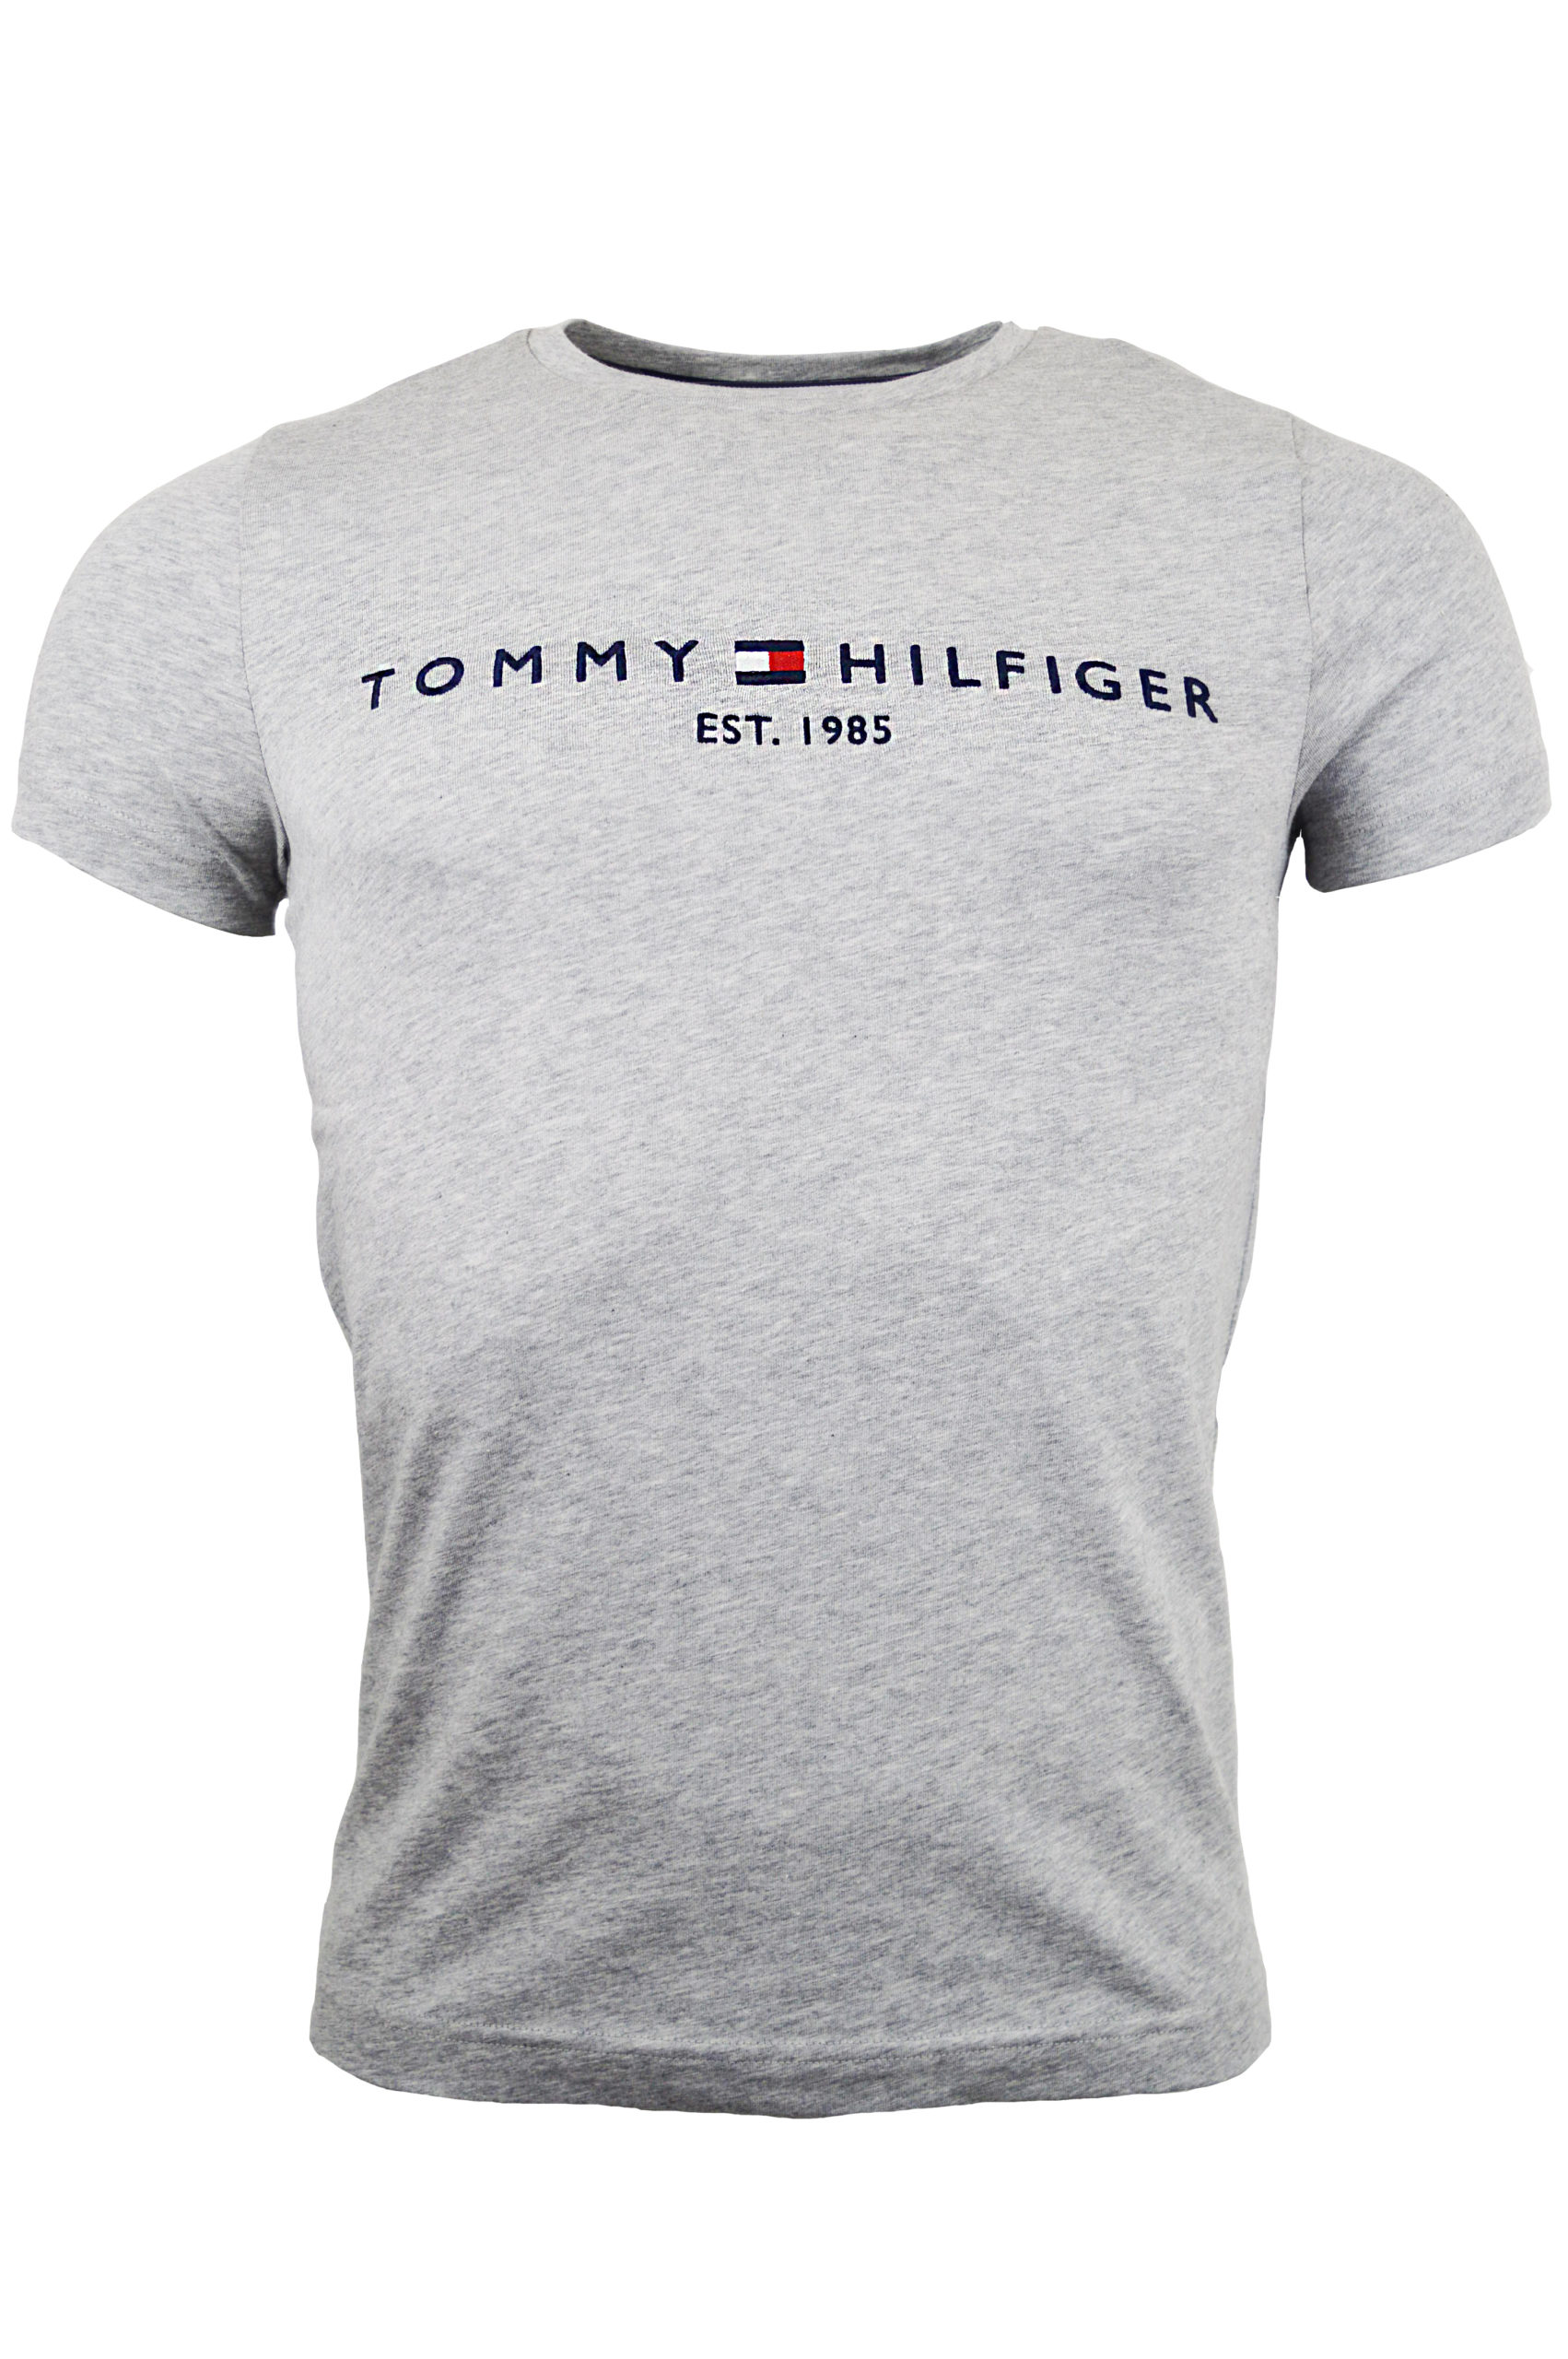 Tommy Hilfiger - 5501 Core Tommy T-Shirt - Grey